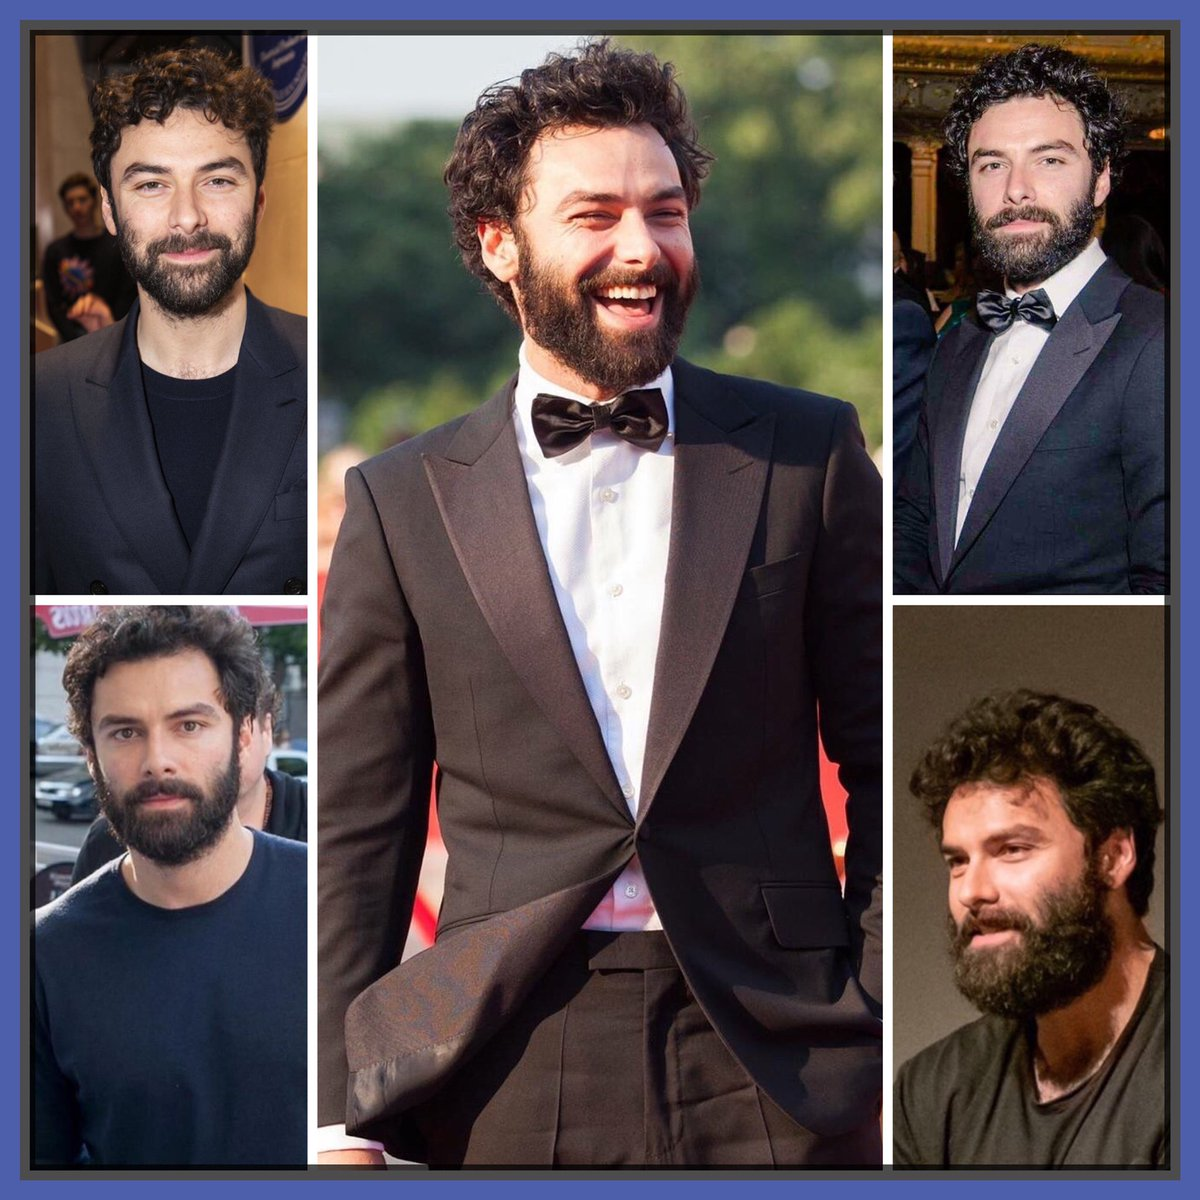 Some #FurryFriday favorites. Hope you're having a splendid day!! #AidanTurner #AidanCrew #Poldark <br>http://pic.twitter.com/pGzm4gpcE5